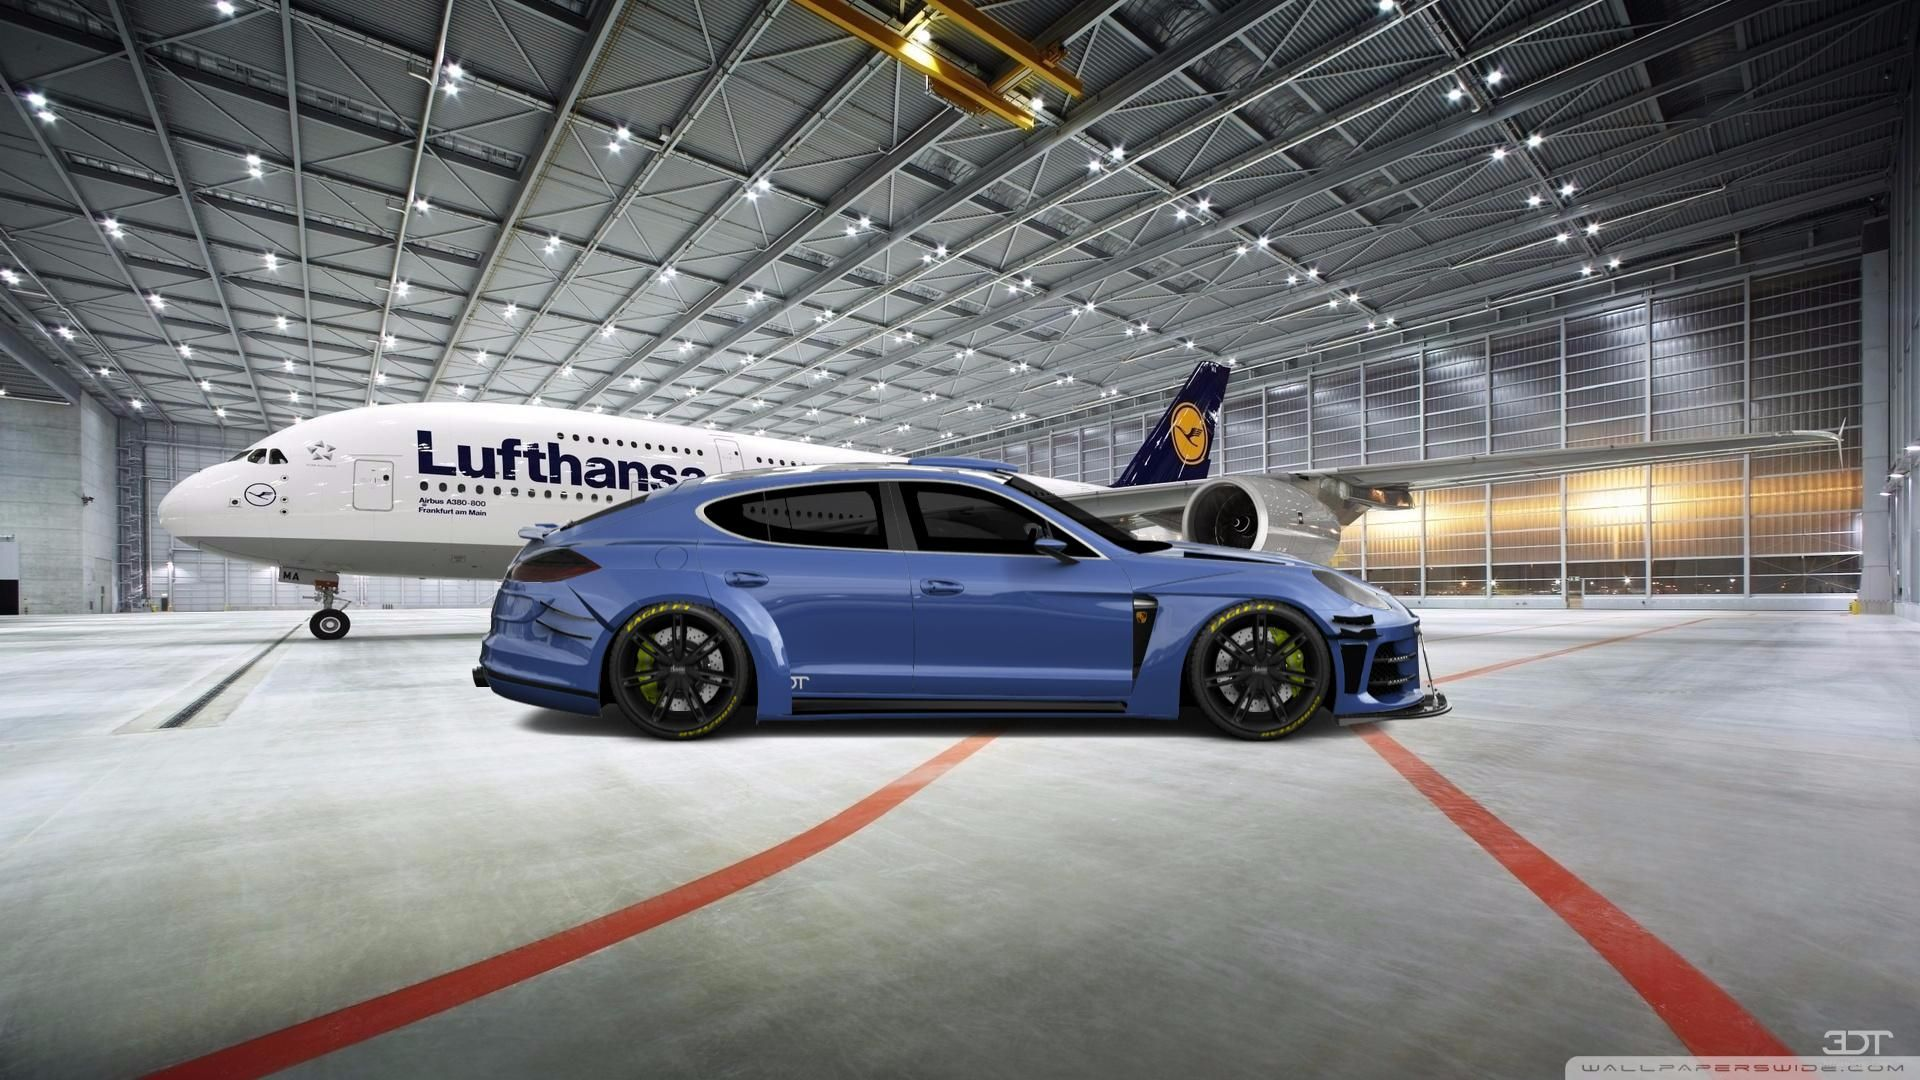 Checkout my tuning Porsche Panamera 2012 at 3DTuning 3dtuning